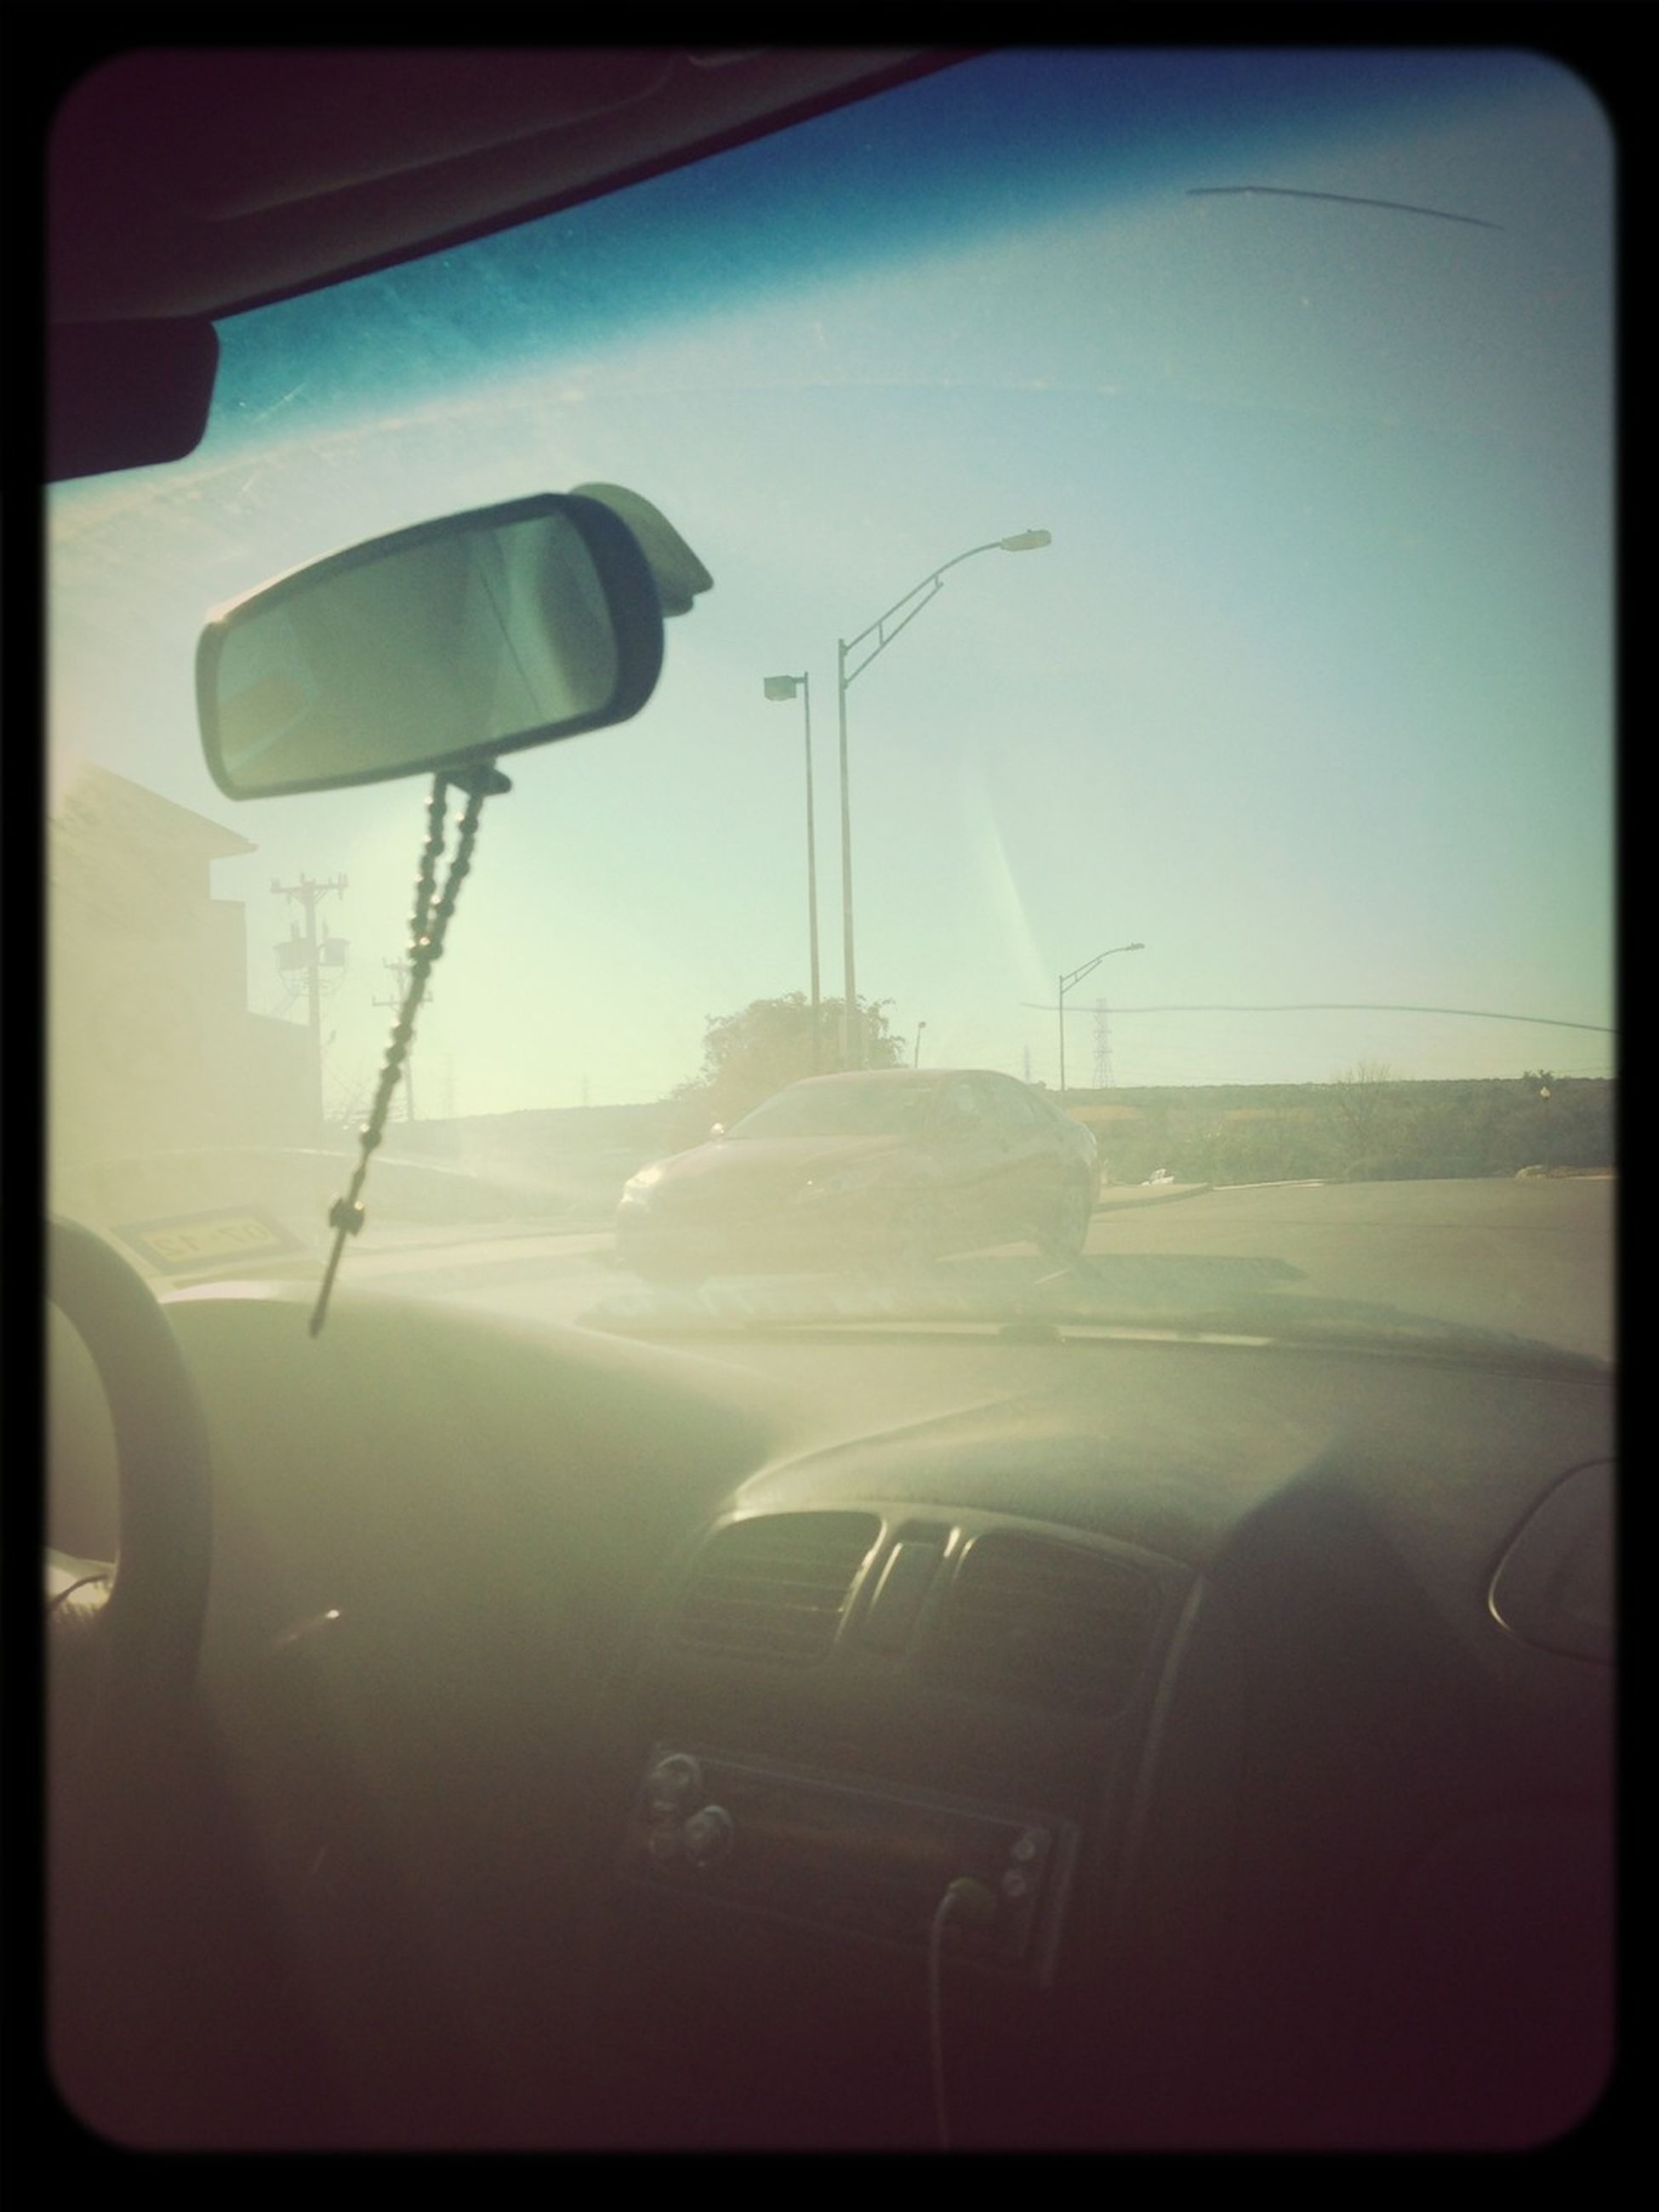 transportation, mode of transport, car, vehicle interior, land vehicle, transfer print, airplane, glass - material, travel, windshield, transparent, air vehicle, street light, sky, window, auto post production filter, on the move, public transportation, car interior, journey